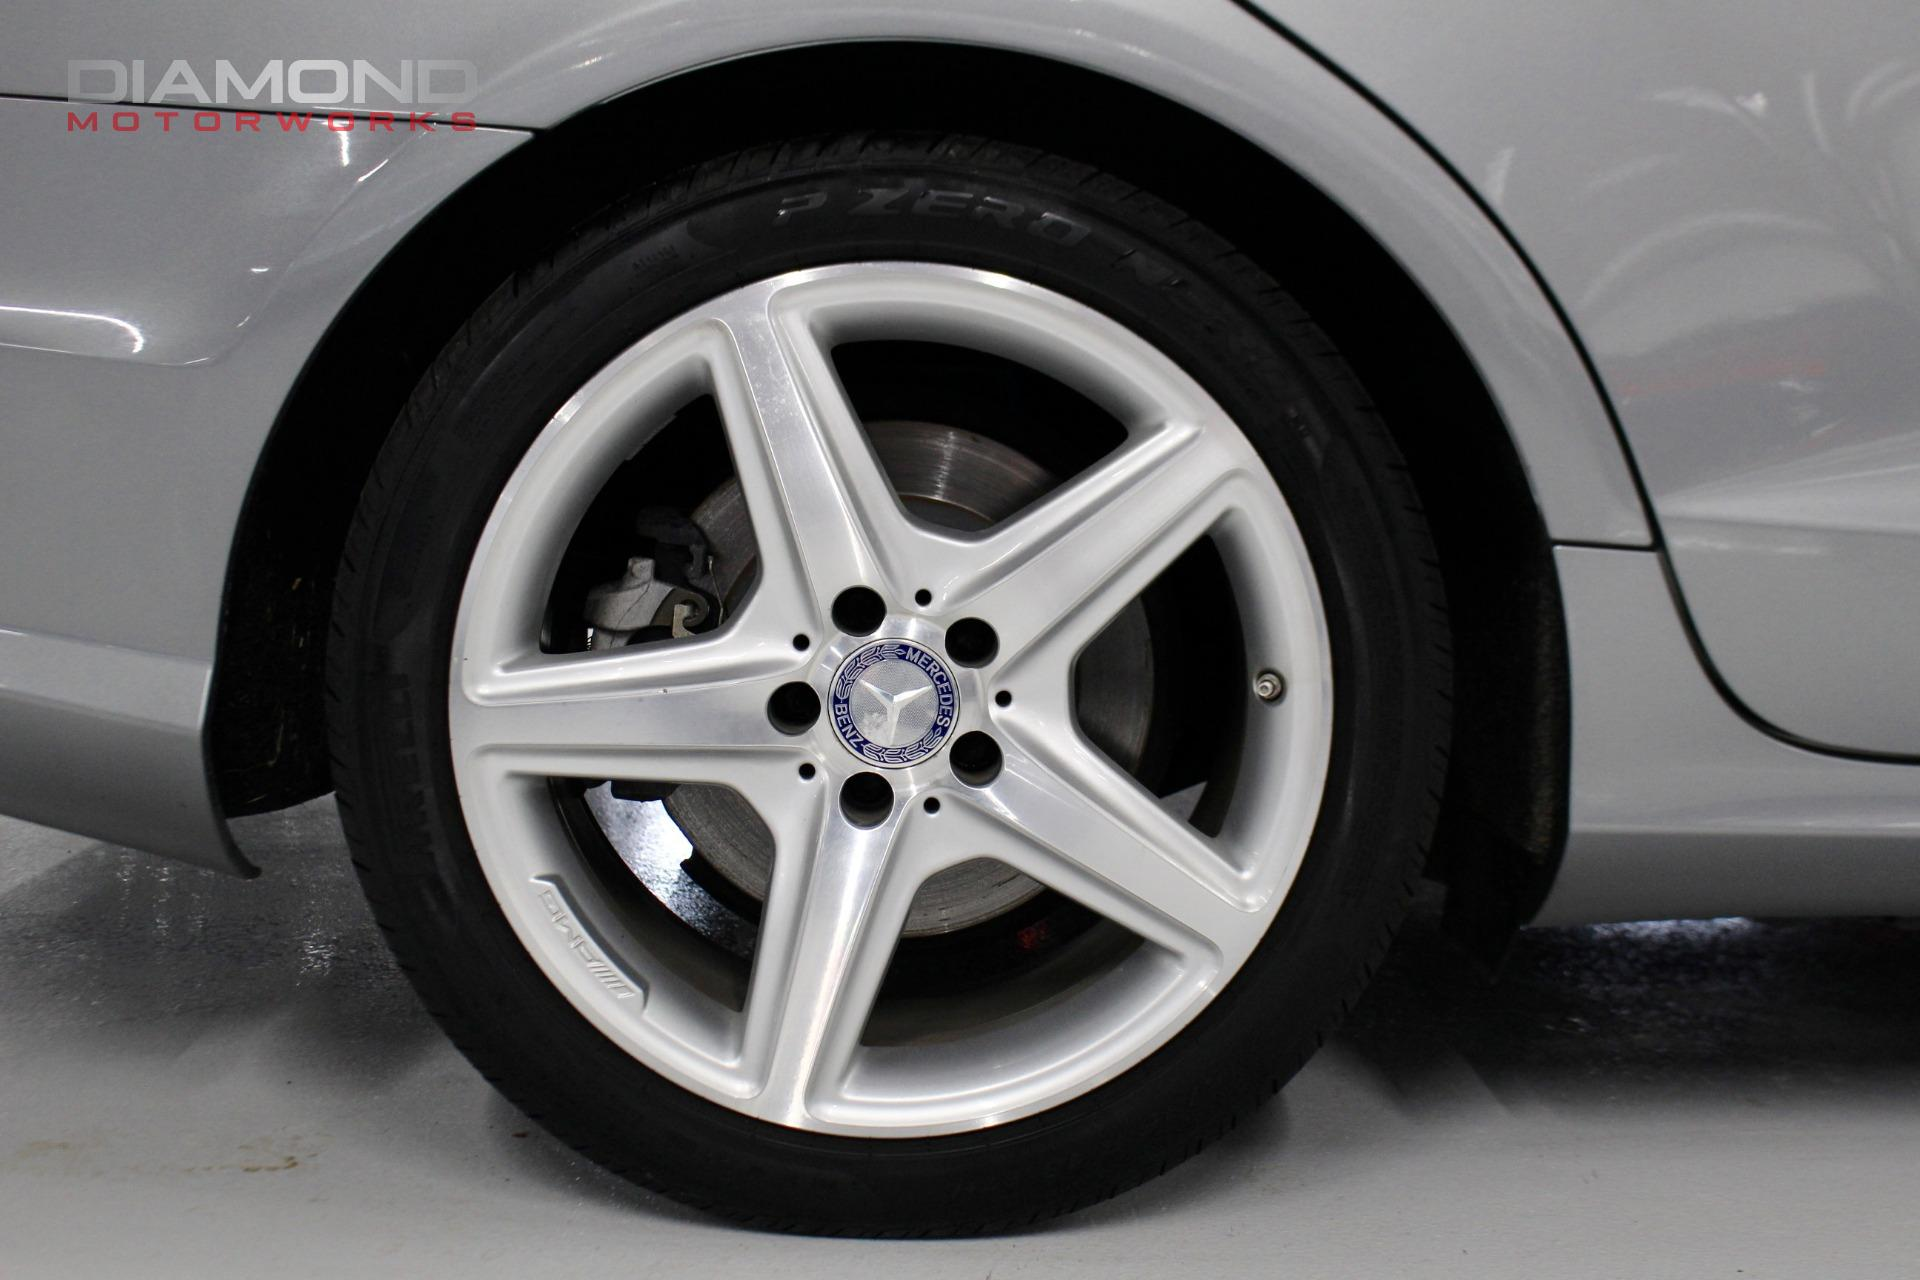 2014 Mercedes Benz Cls 550 4matic Stock 095229 For Sale Near 2008 Cls550 Rims Used